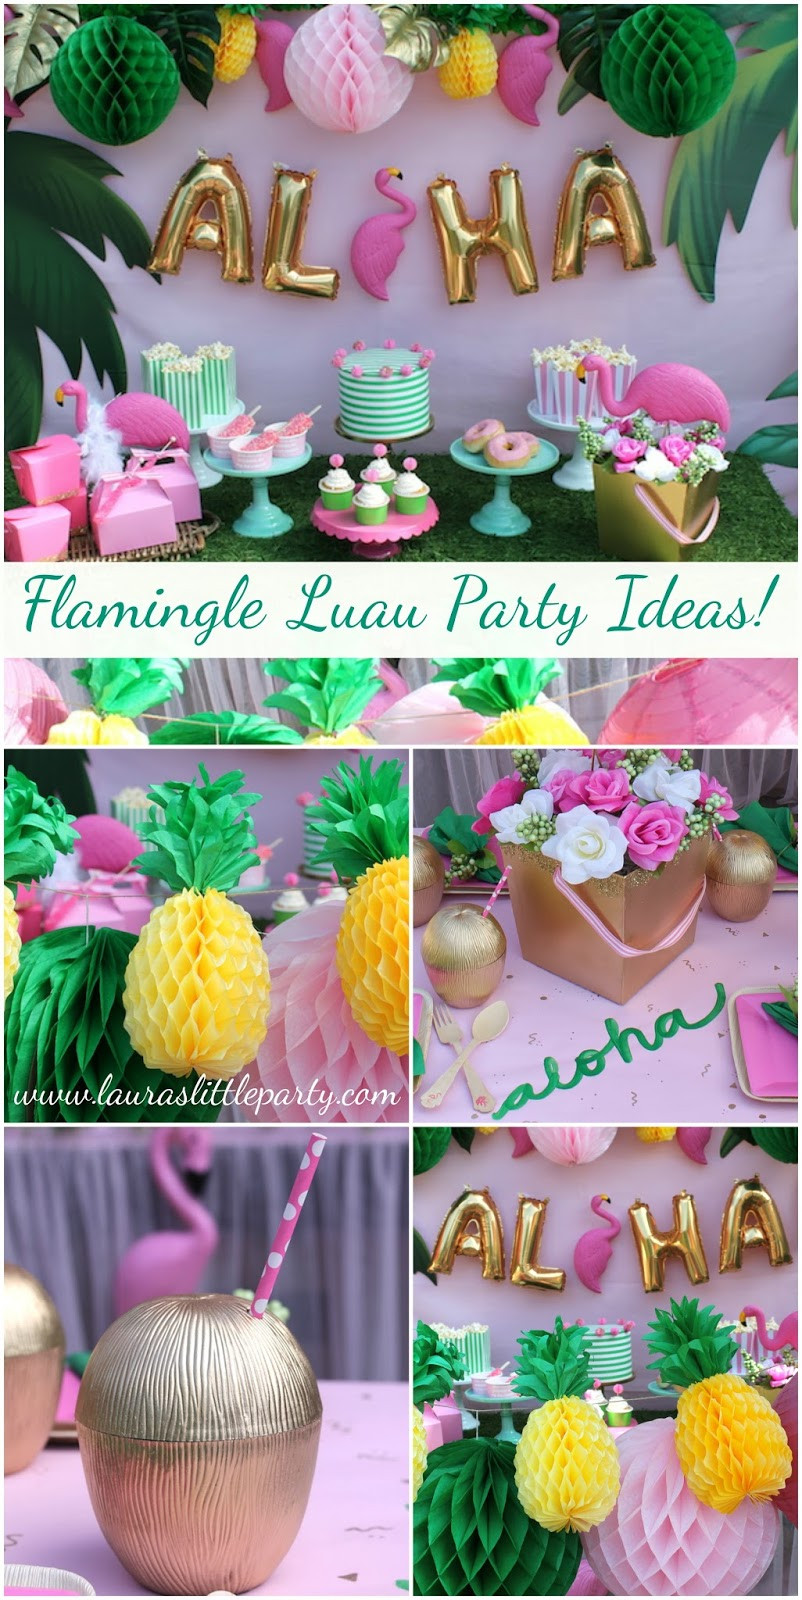 Ideas For Summer Party  Let s Flamingle Luau Summer Party Ideas LAURA S little